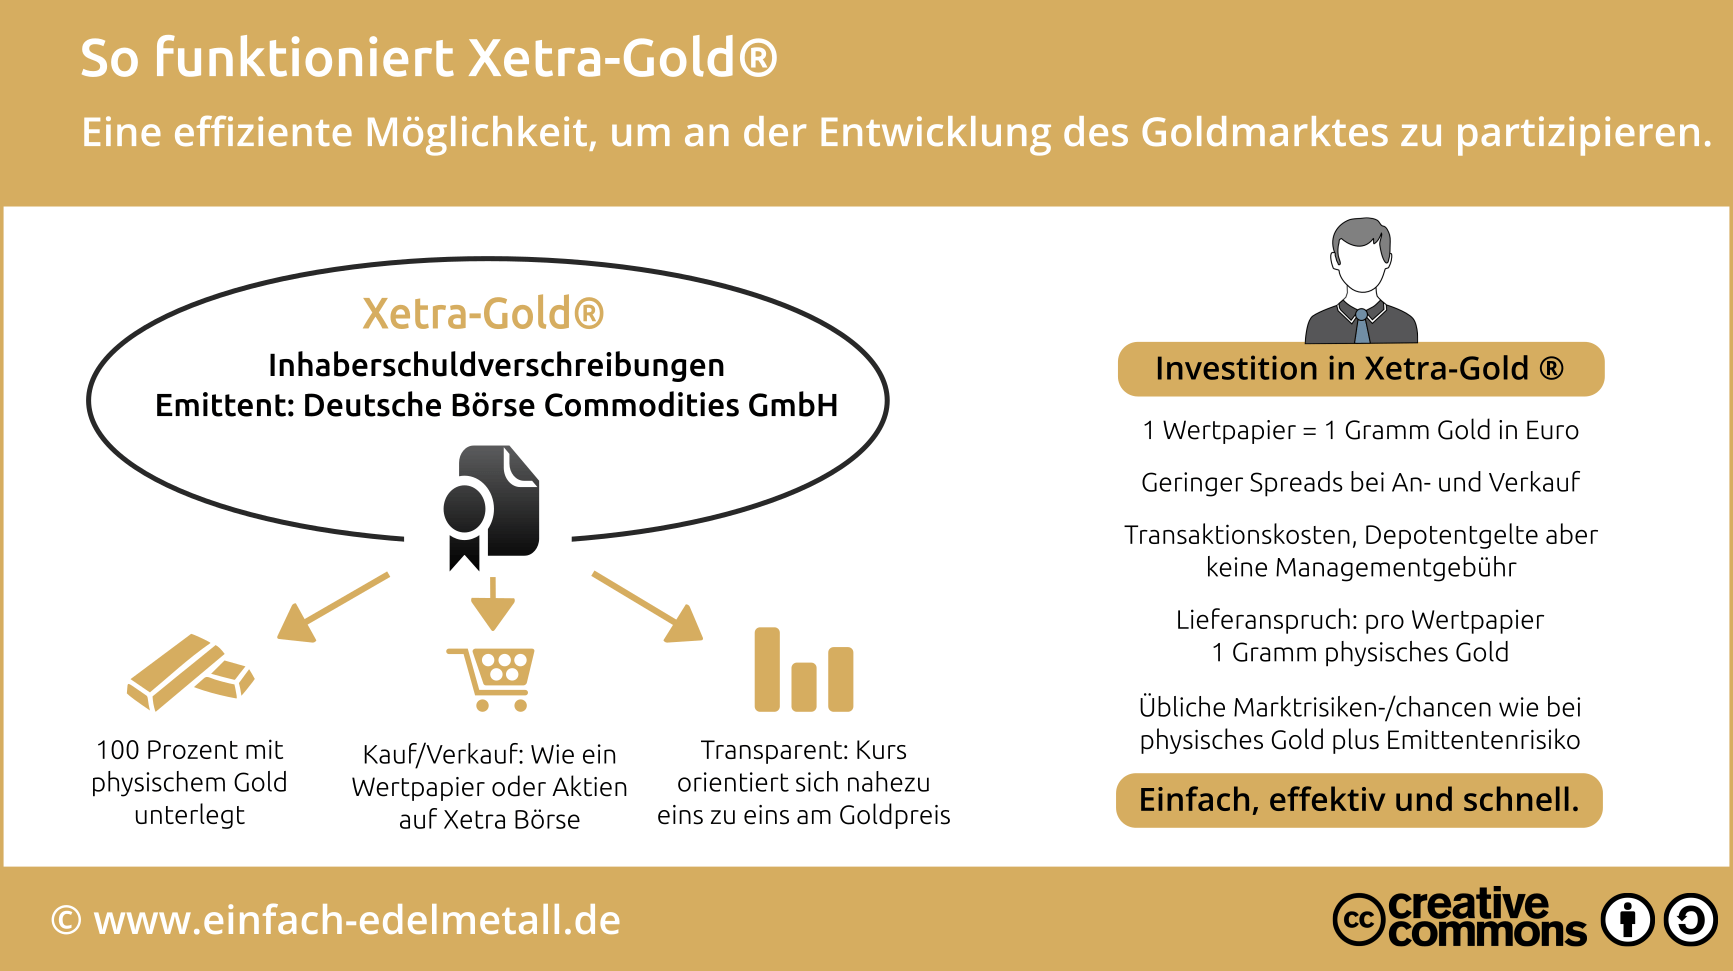 Infografik: So funktioniert Xetra-Gold